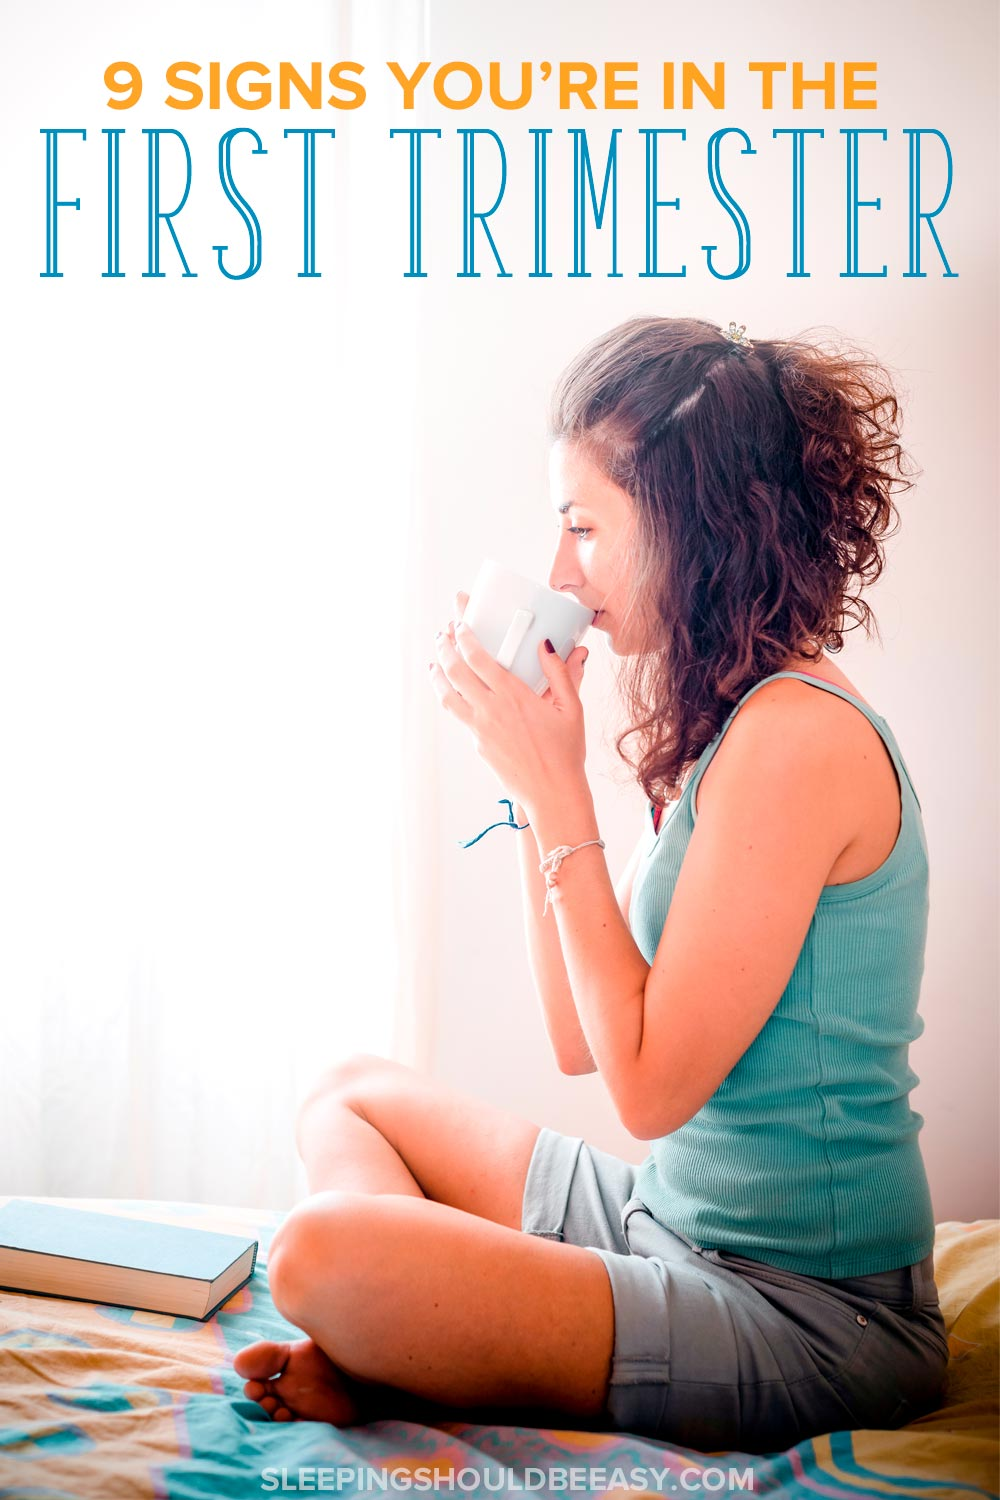 9 signs you're in the first trimester: Woman sitting in bed, dripping a cup of tea